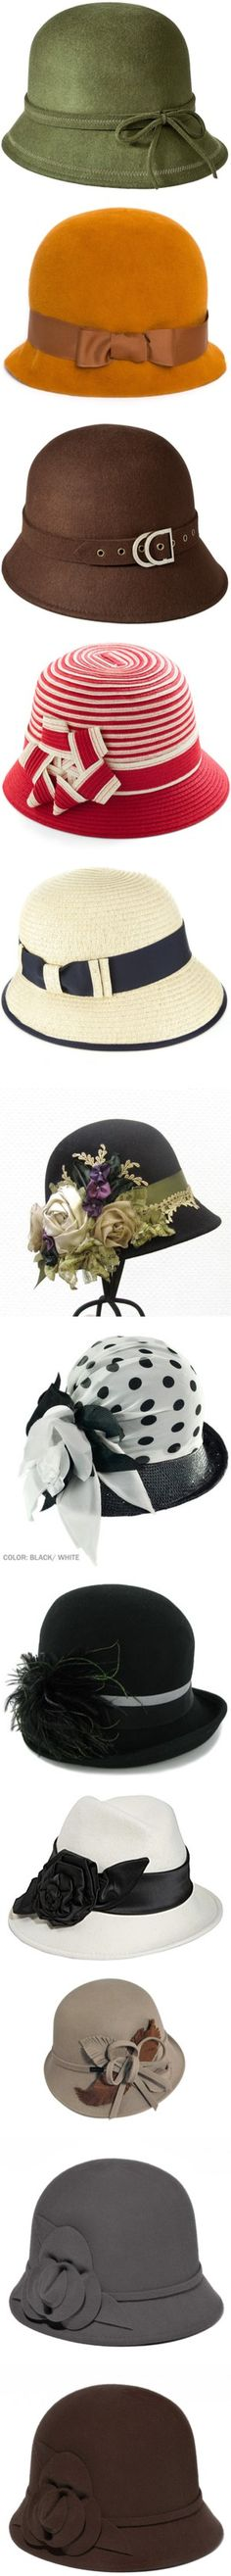 """""""cloche vintage hats"""" by countrycousin ❤ liked on Polyvore I HAVE A HAT LIKE THIS AT BONBONS CLOSET@AOL.COM I have a vintage hat like this in my Boutique"""